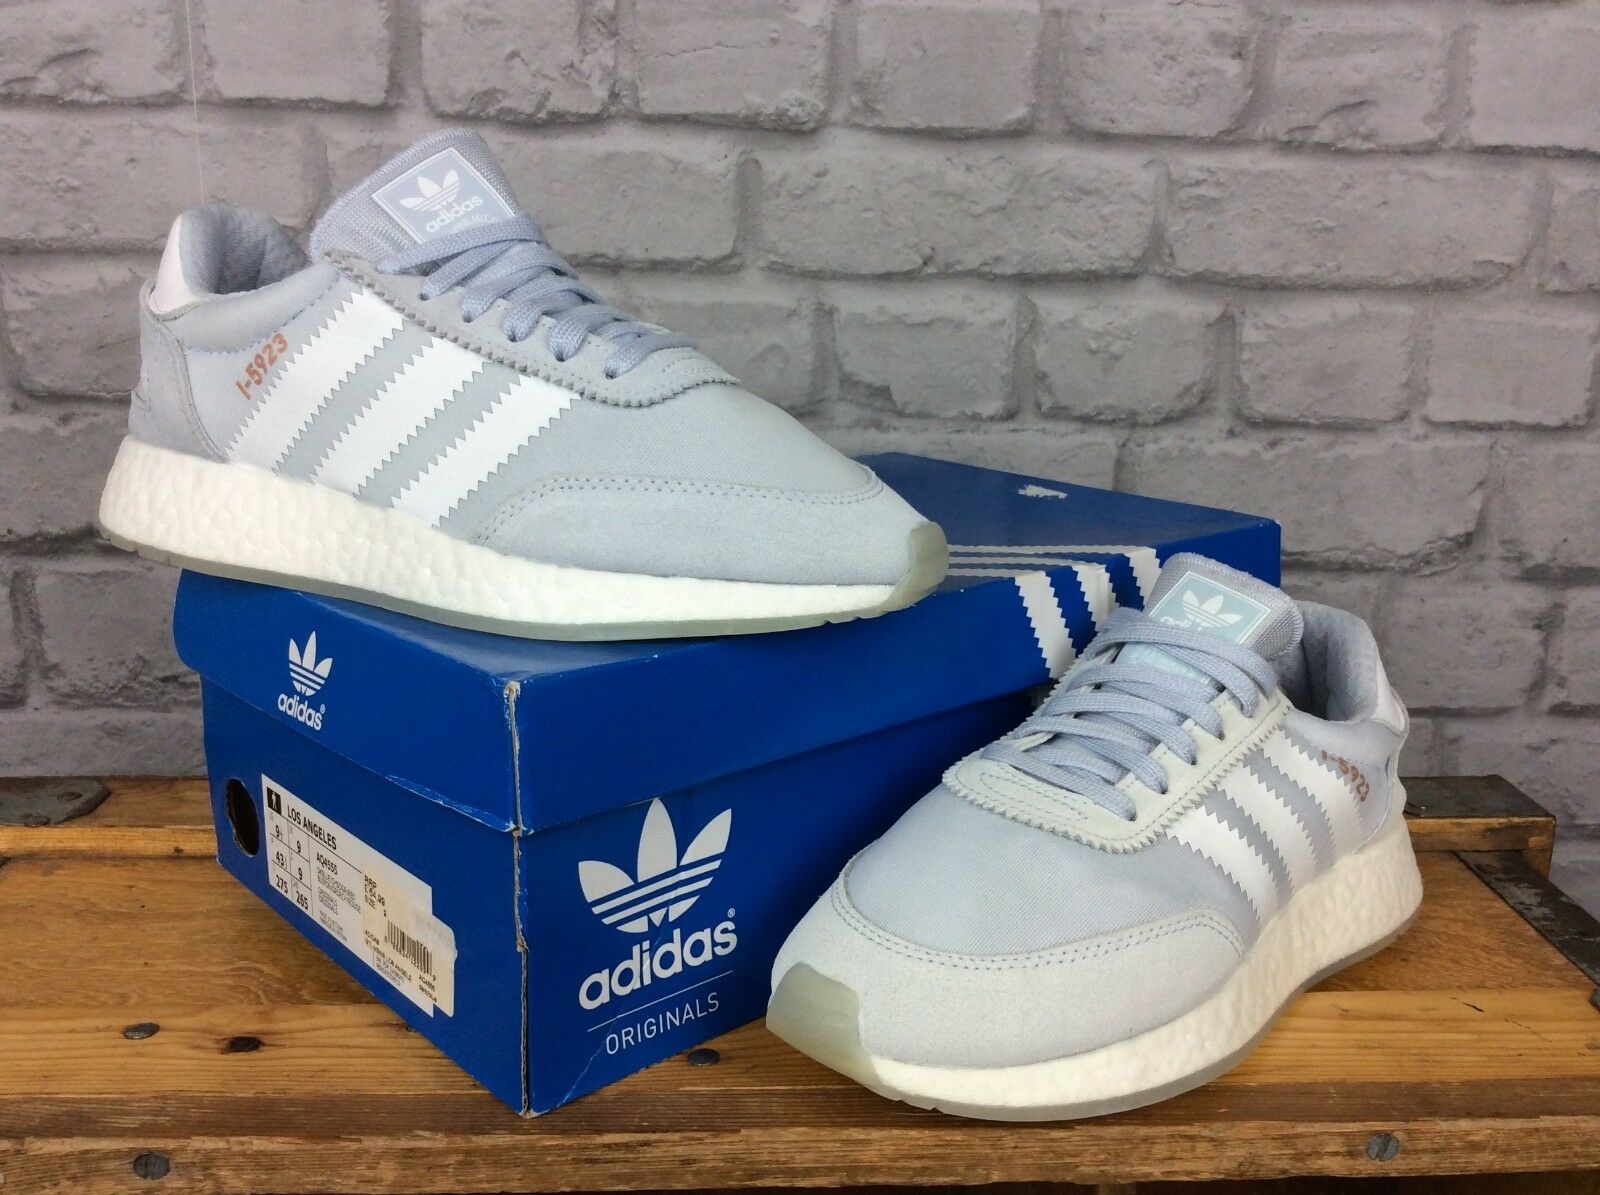 ADIDAS ORIGINALS LADIES6.5 EU 40 PALE bleu I-5923 BOOST TRAINERS